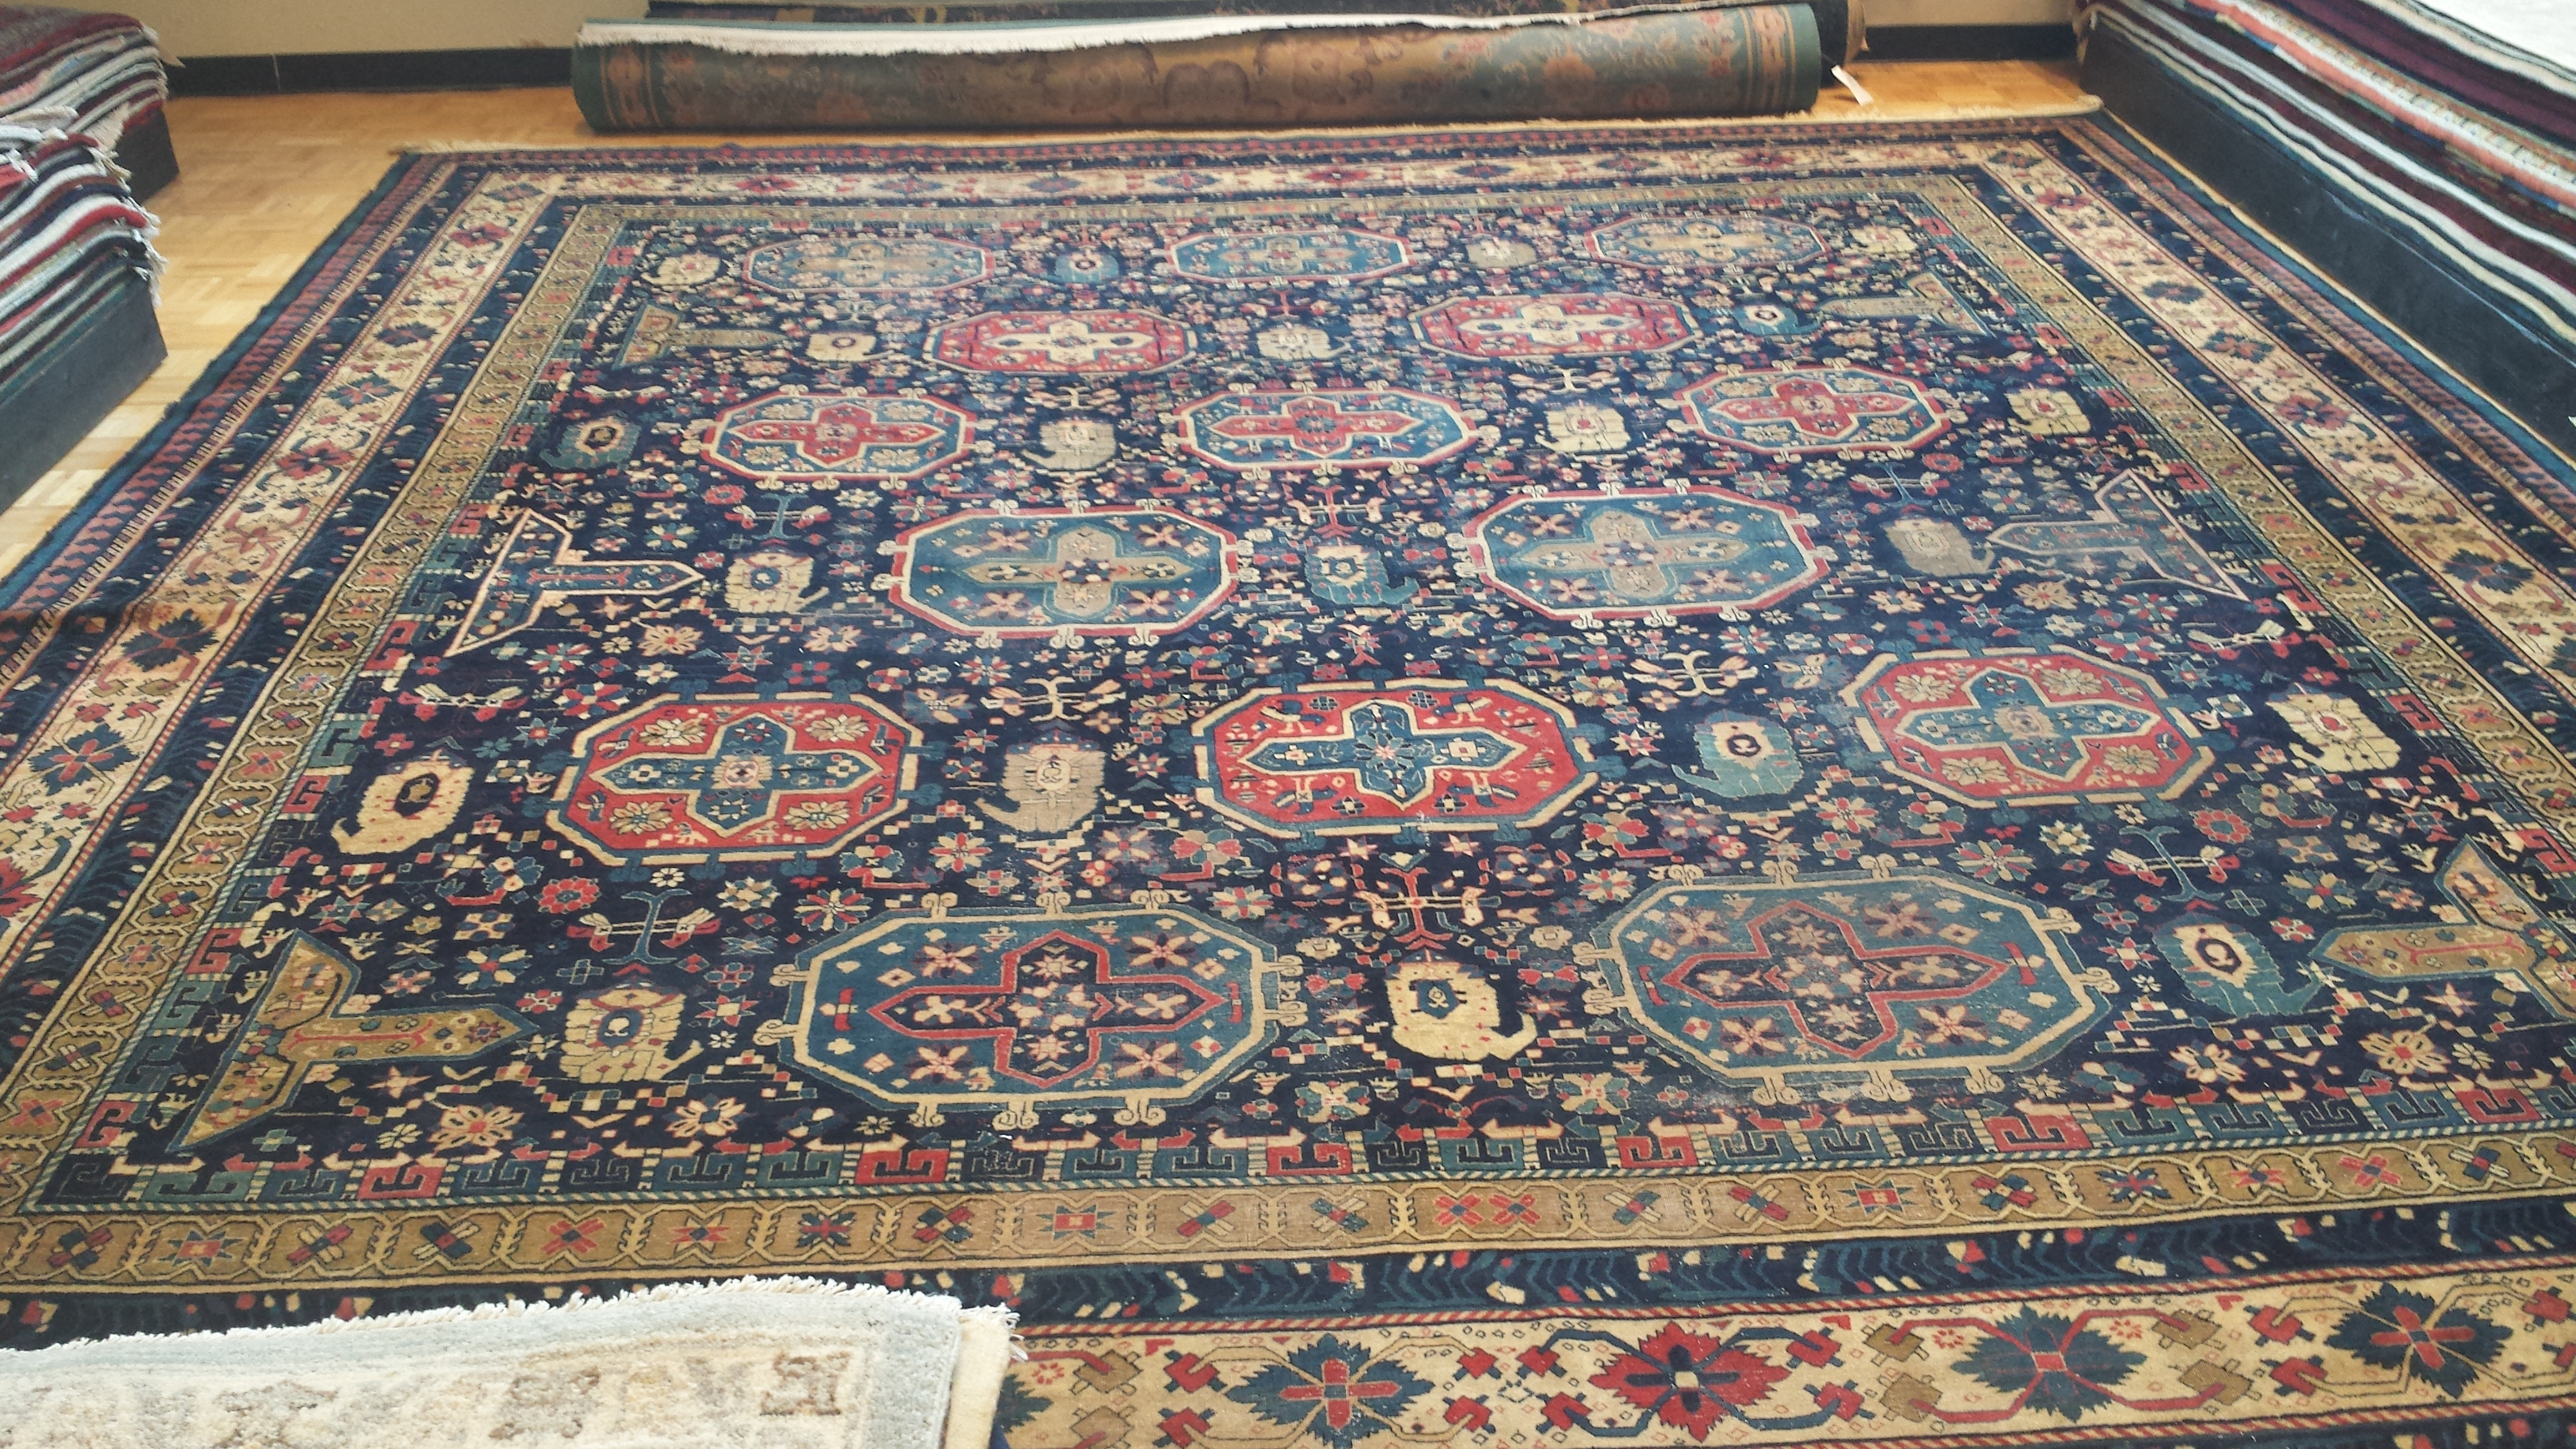 Professional Rug Cleaning Lake Forest IL – North Shore Rug Cleaners